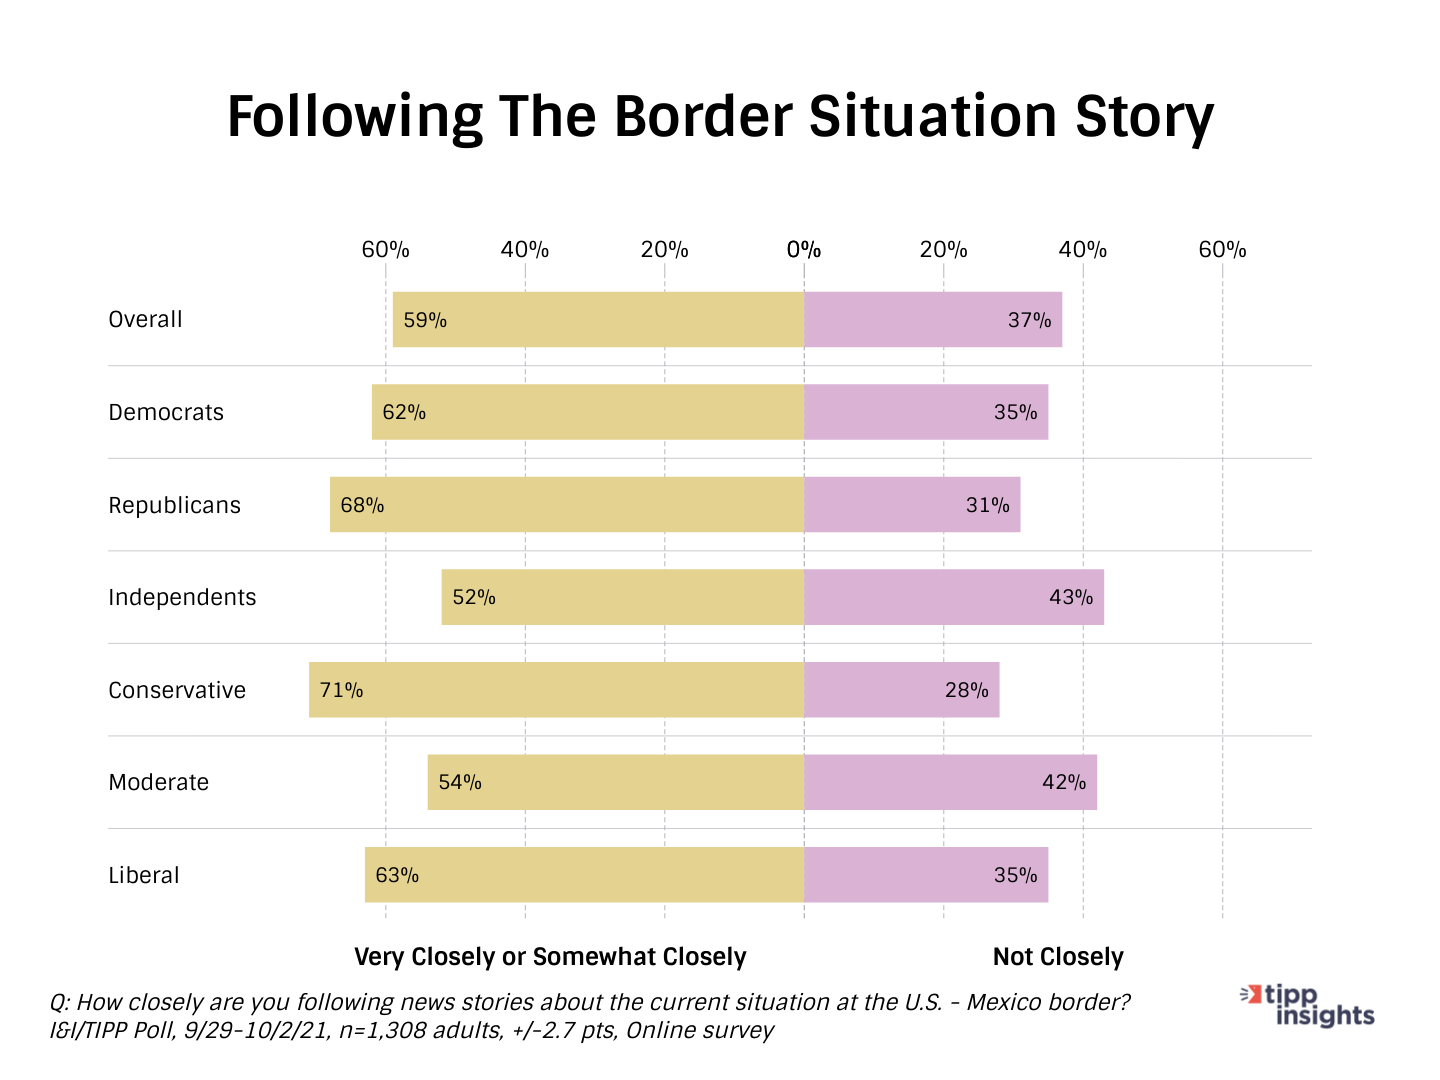 I&I/TIPP Poll Results: Americans following the souther border situation